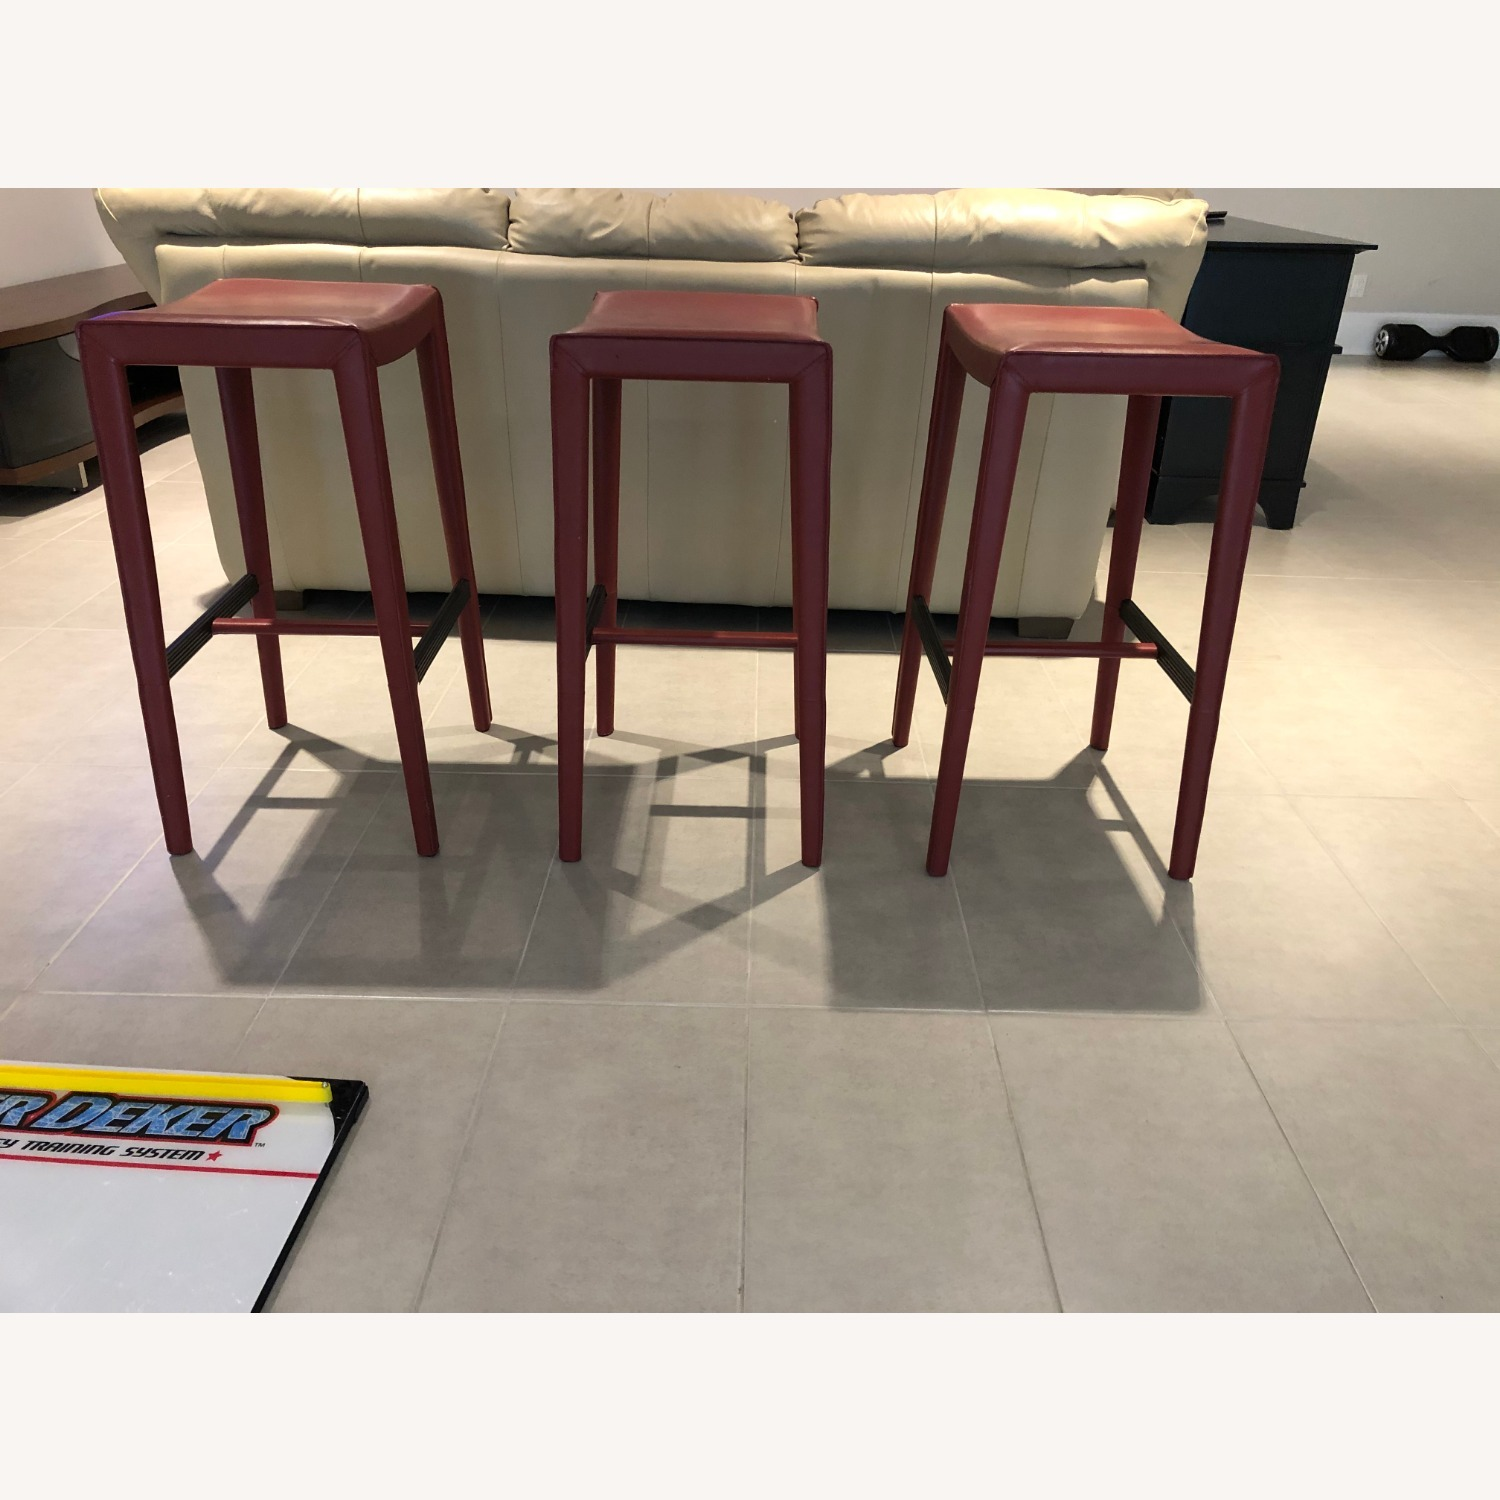 Crate & Barrel Backless Red Leather Stools - image-3